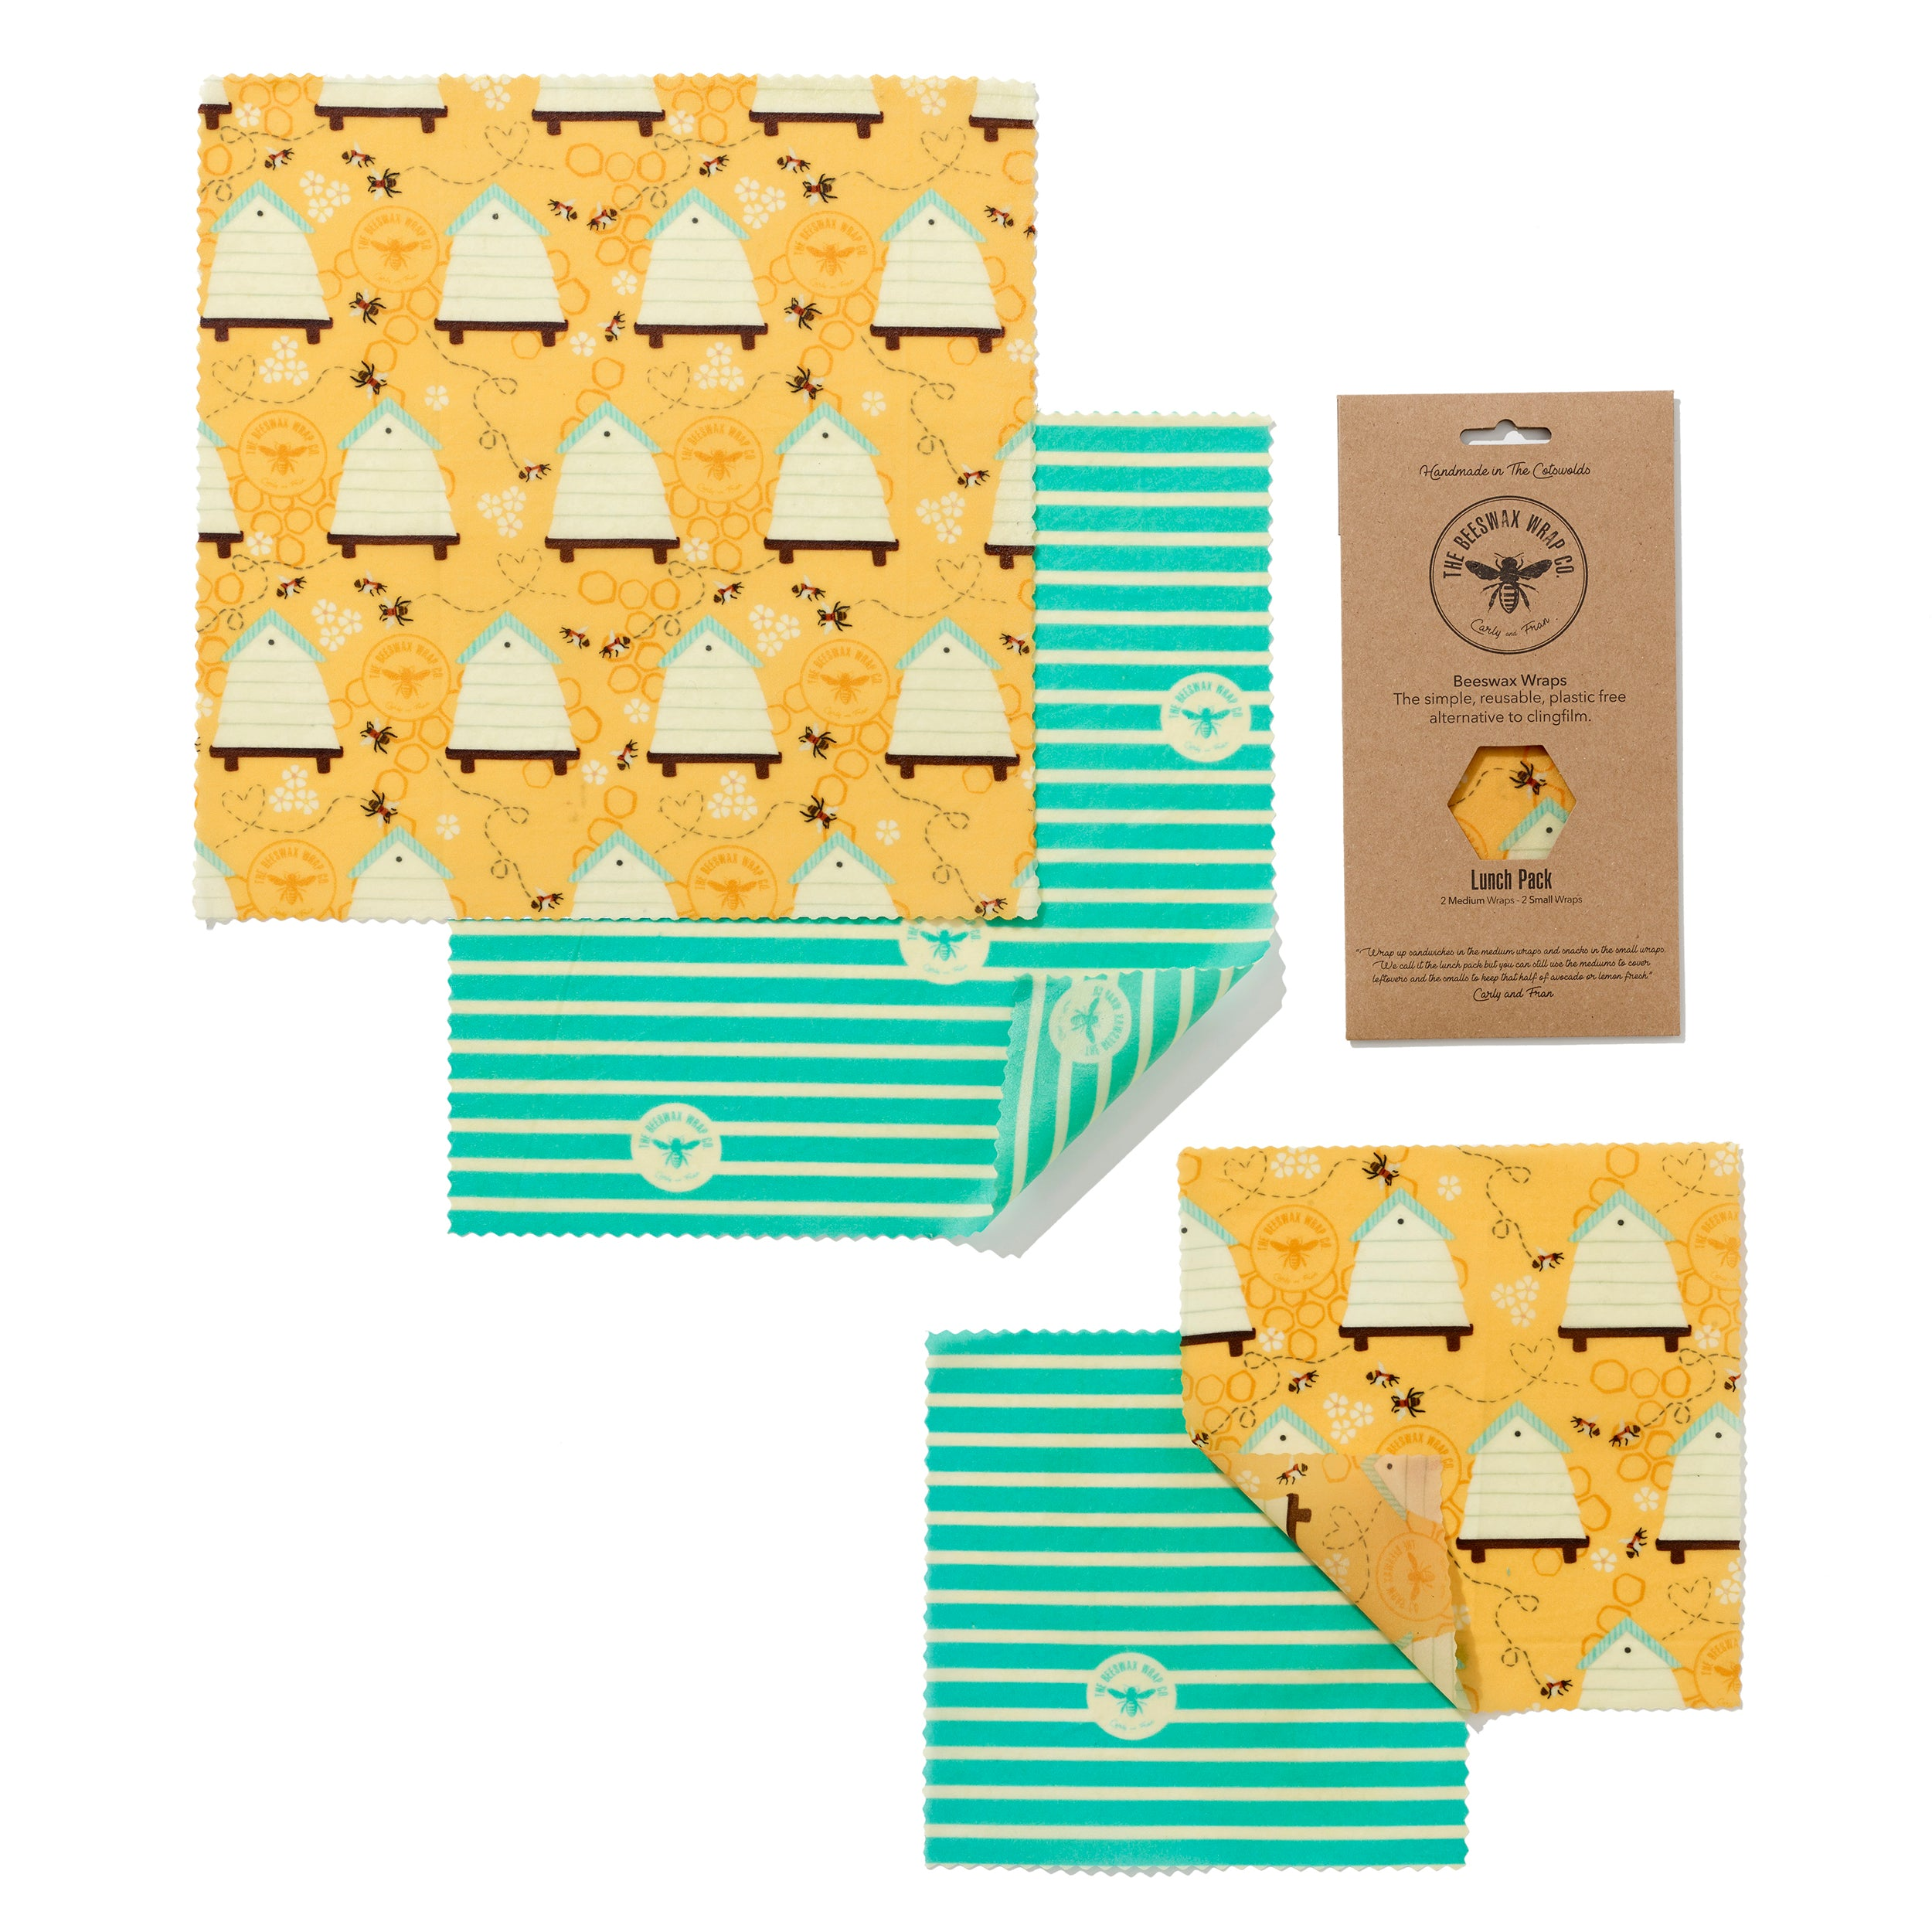 'Lunch Pack' Beeswax Wraps - Bee Hive - The Weekly Shop | Plastic Free Online Shop